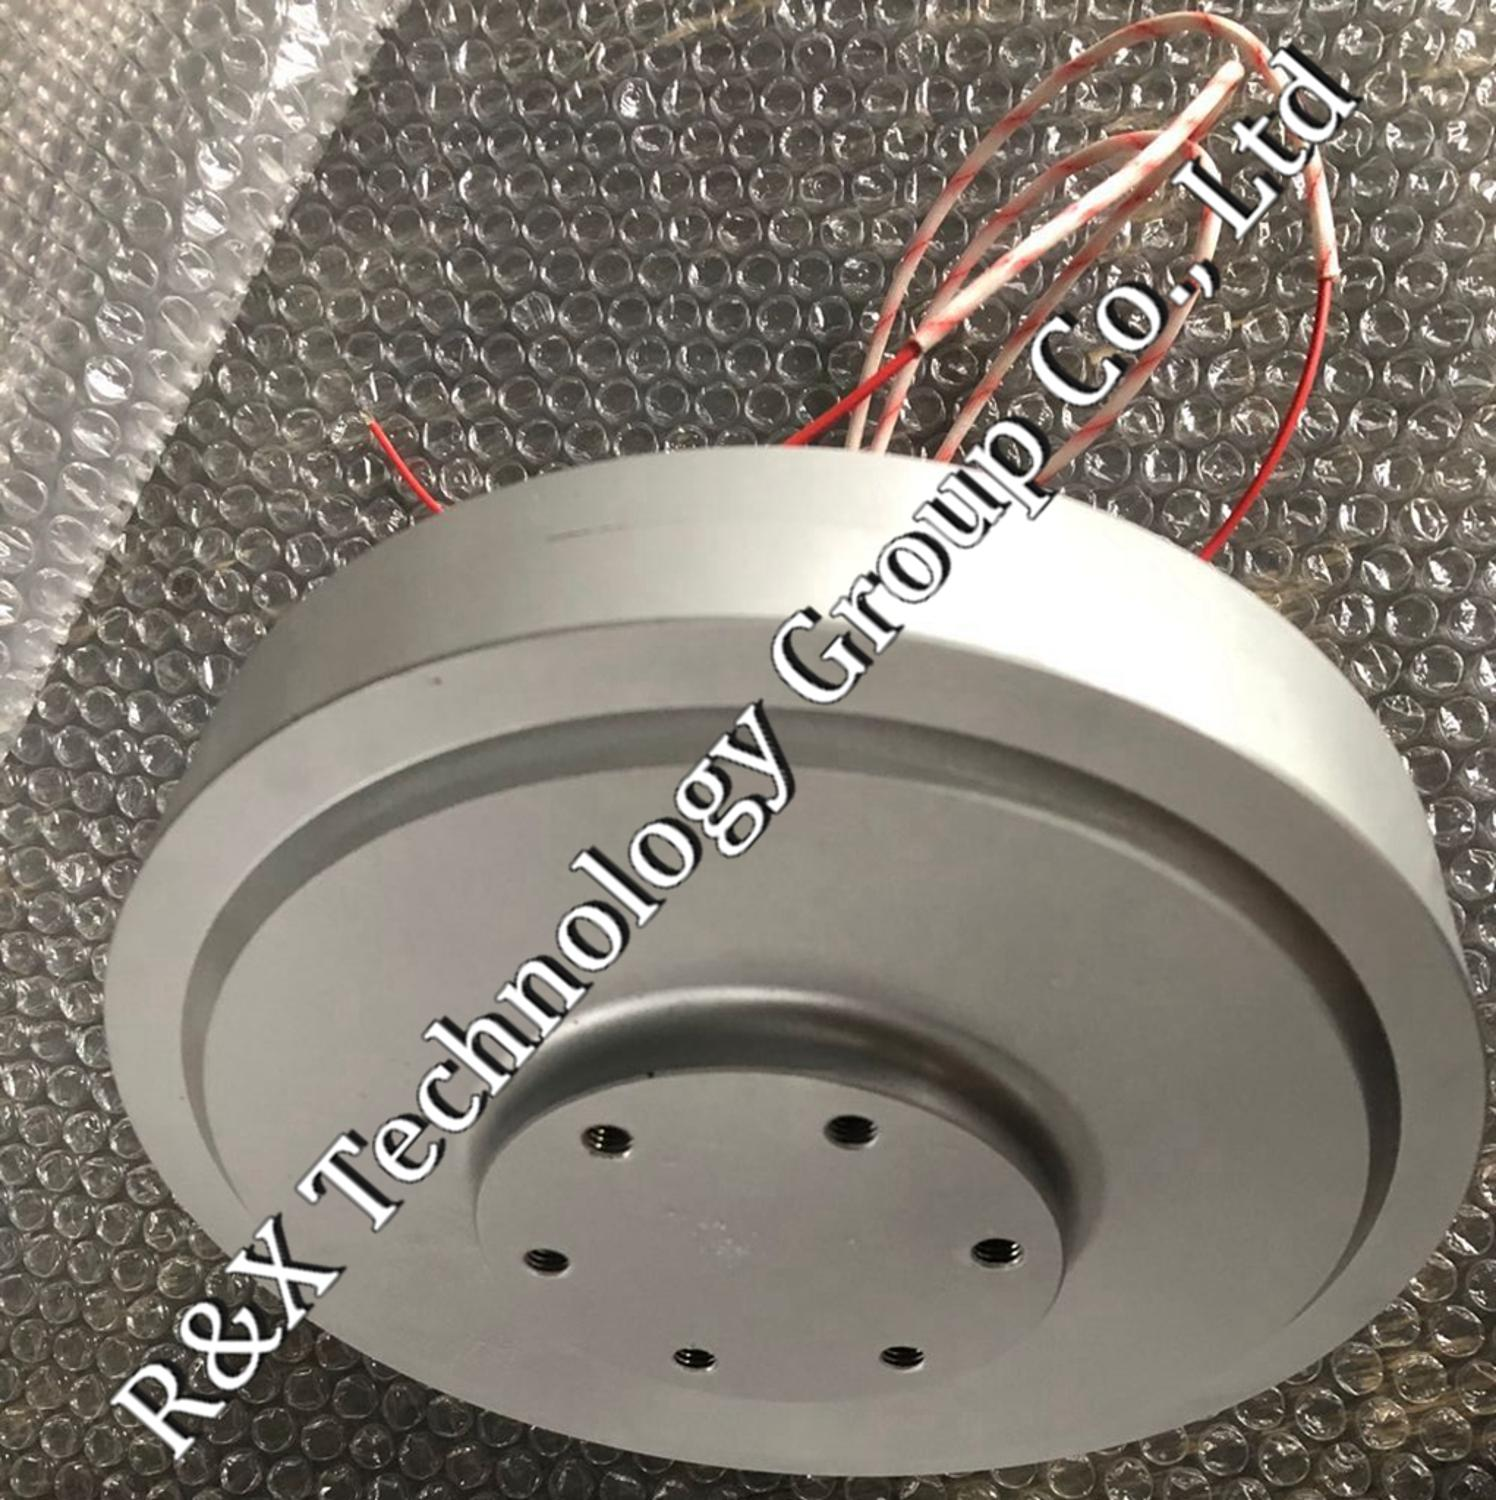 CE 200W 300RPM 24V AC Disc PMG Outer Rotor Three Phases Coreless Permanent Magnet Generator Alternator